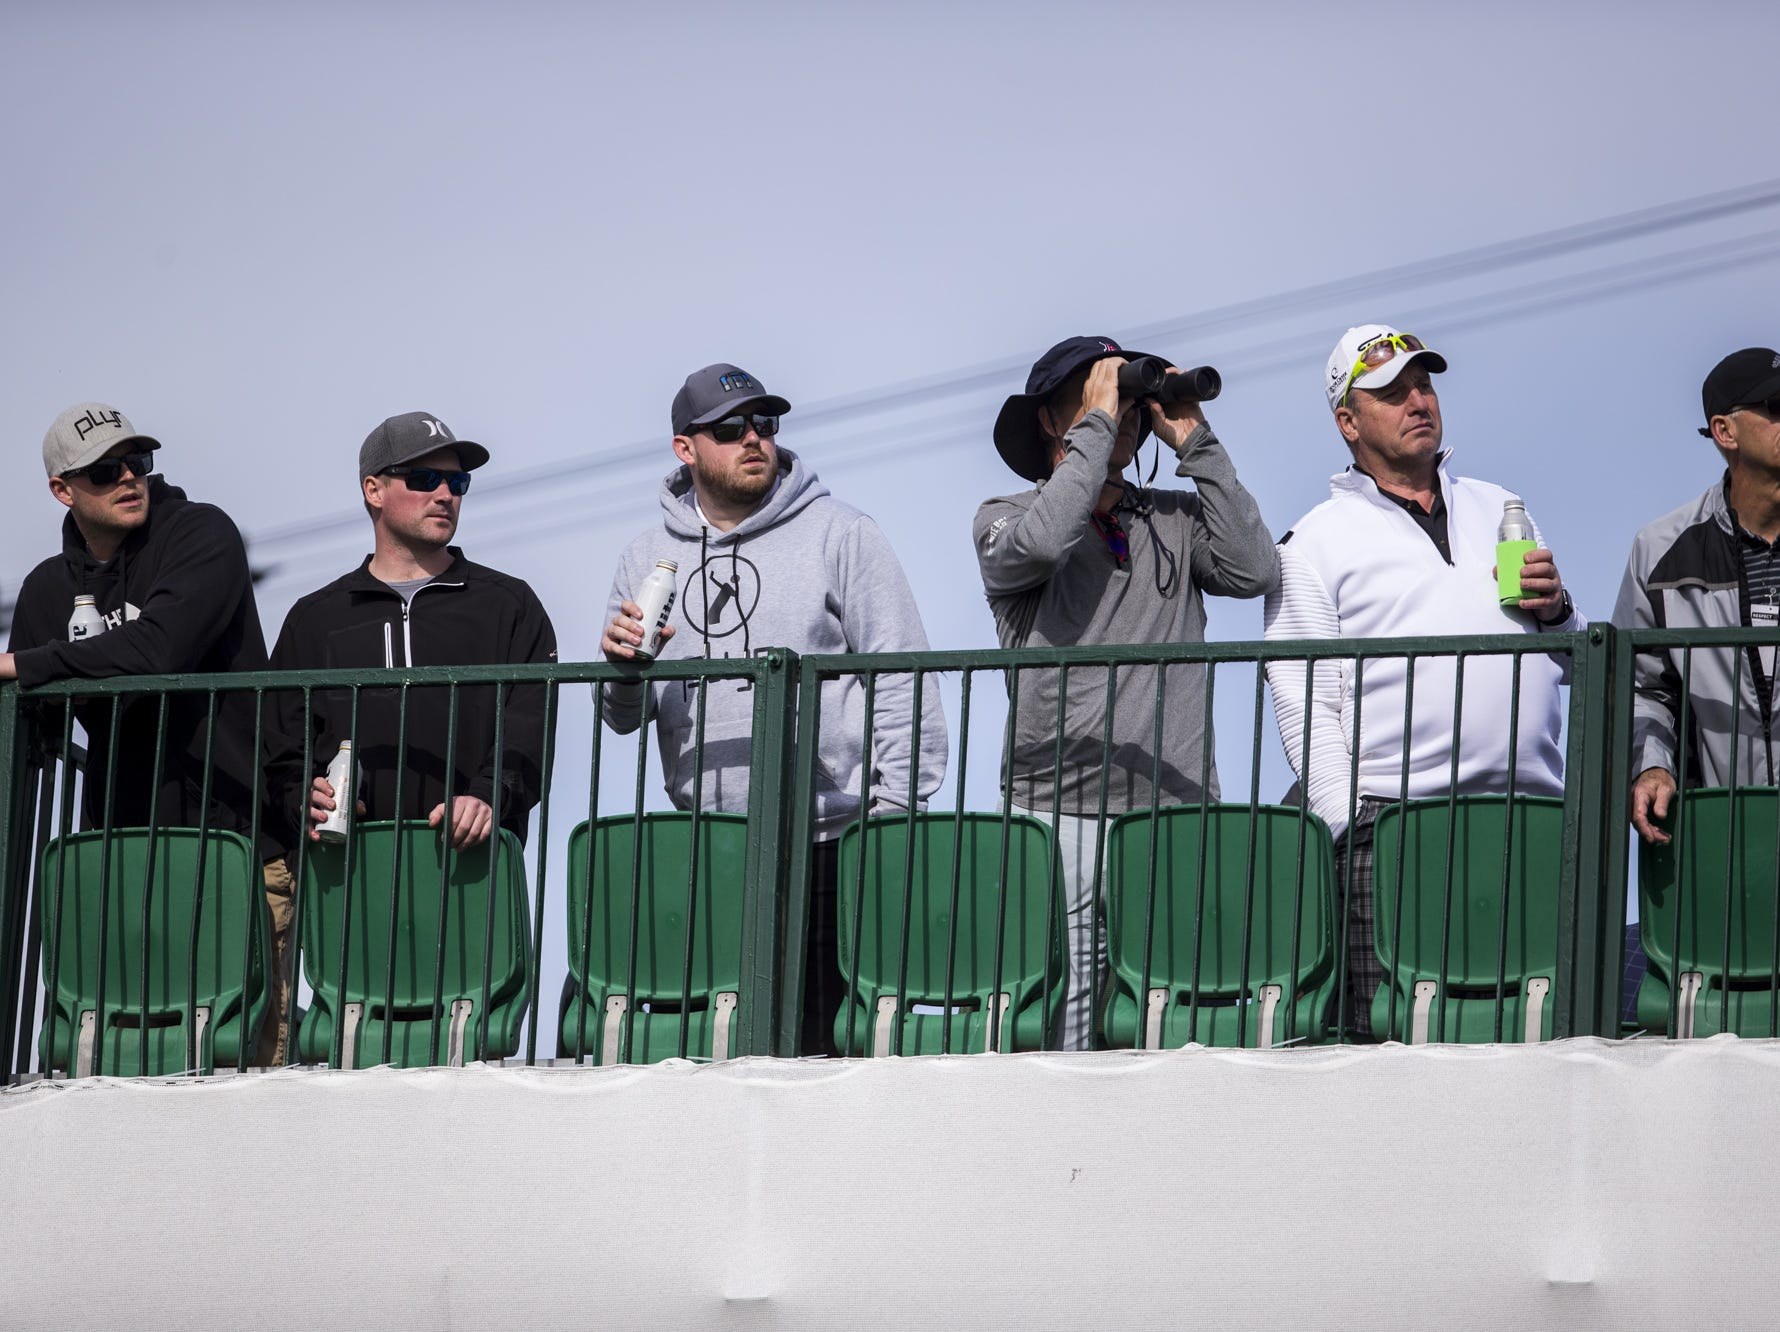 Fans watch a drive on the 17th hole during the first round of the Waste Management Phoenix Open at TPC Scottsdale.